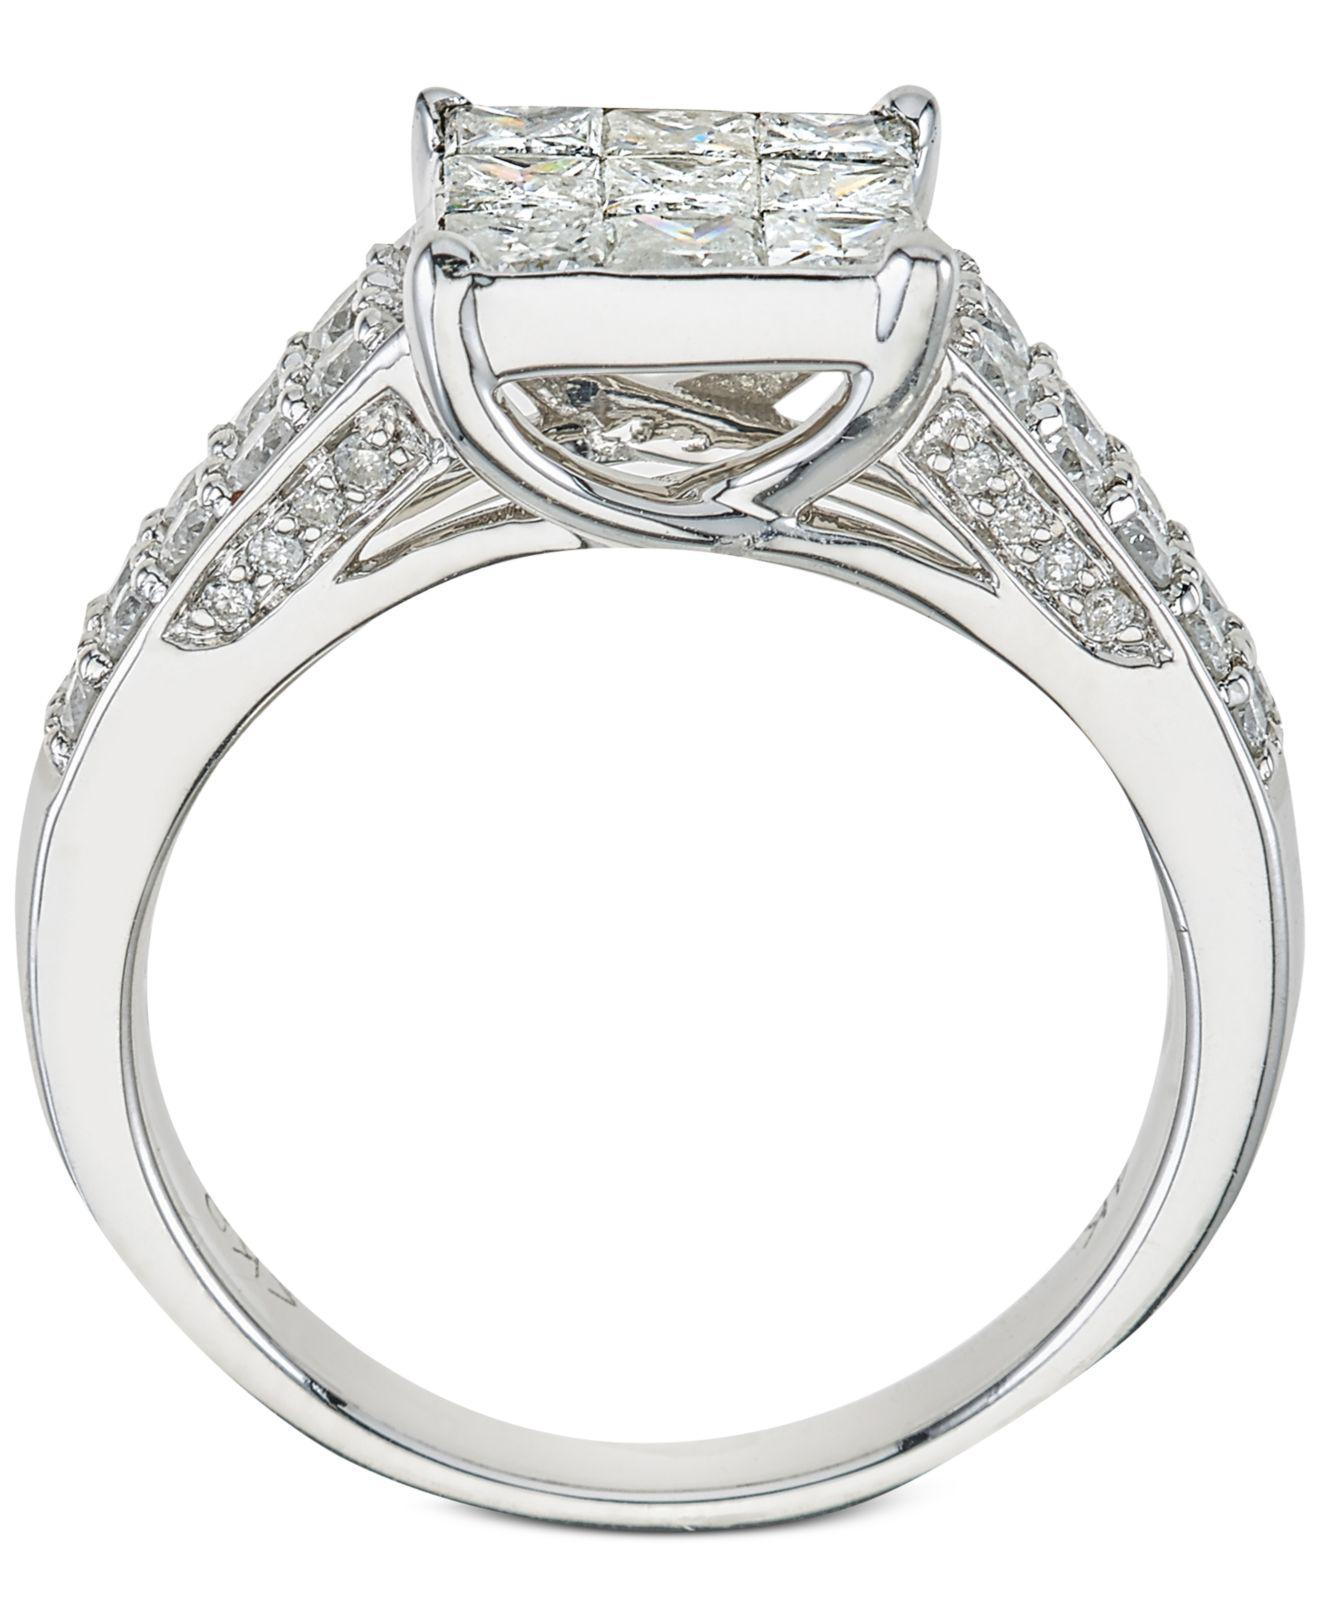 designer diamond macy t view in cluster s w jewelry fullscreen macys rings engagement ct white lyst tw square ring gold